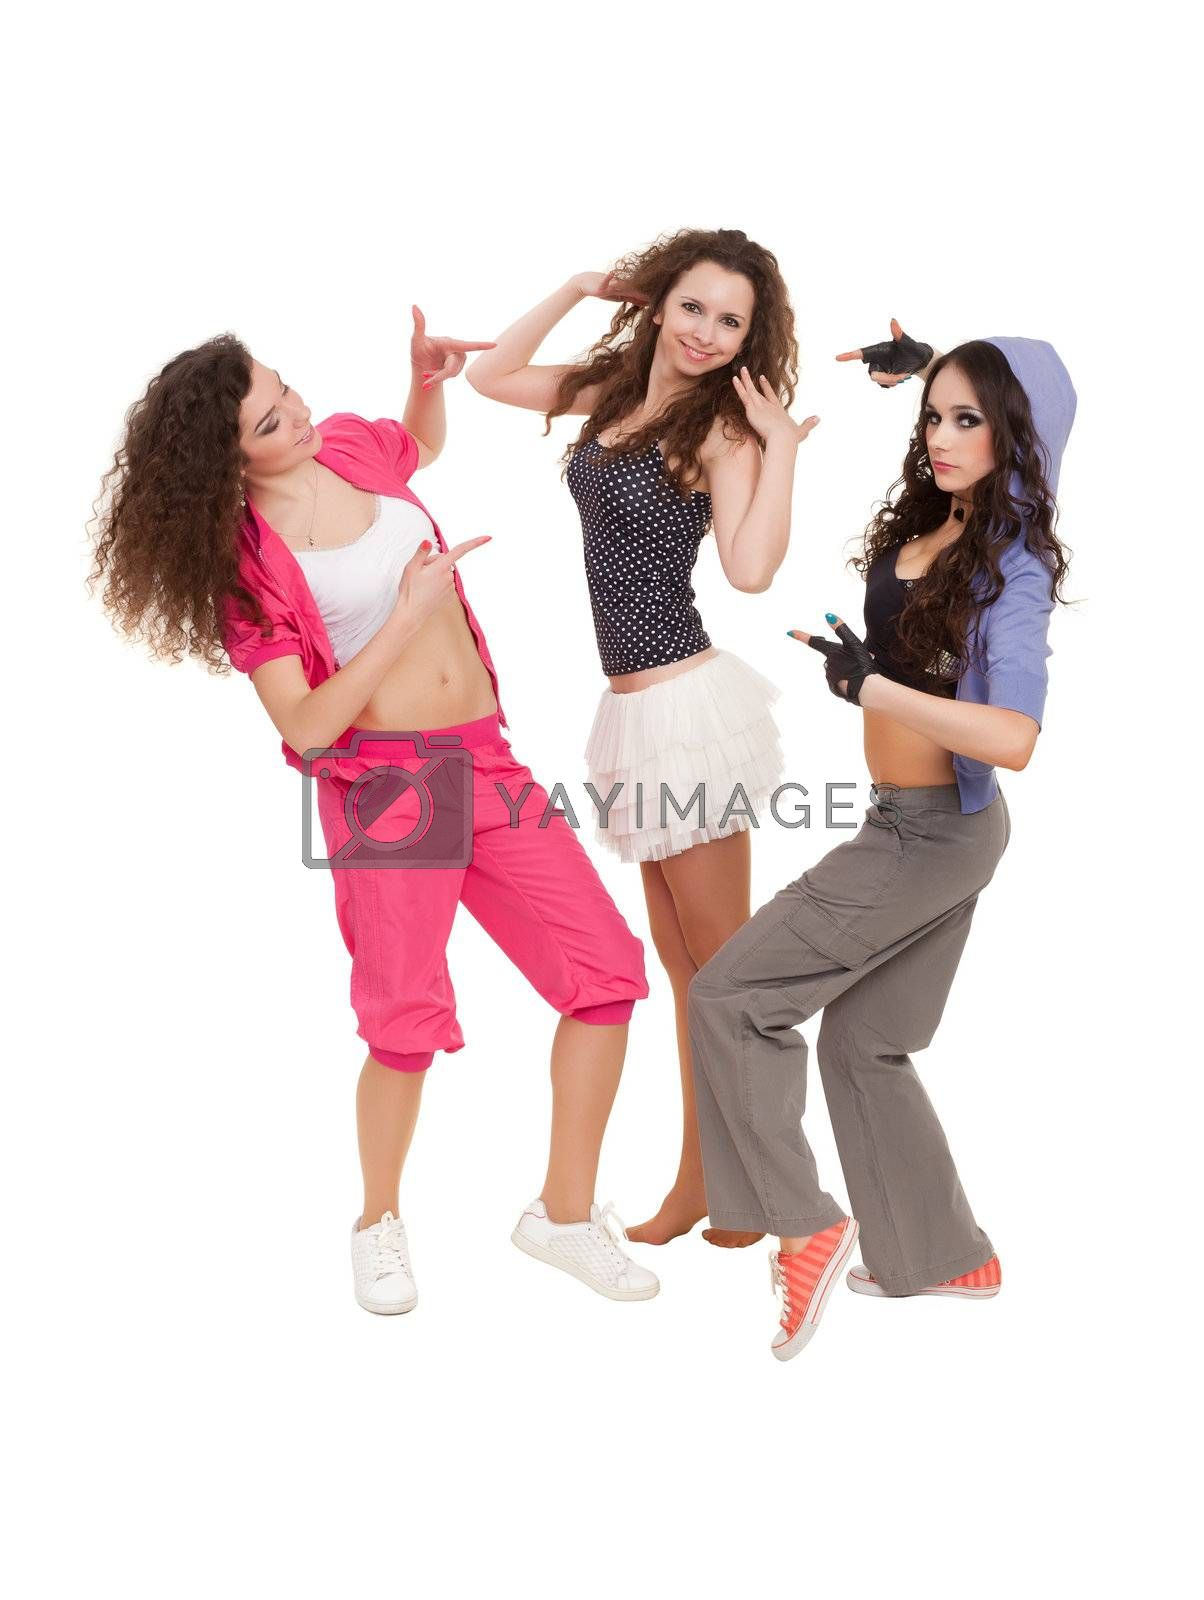 Modern ballet of three dancers posing for photo